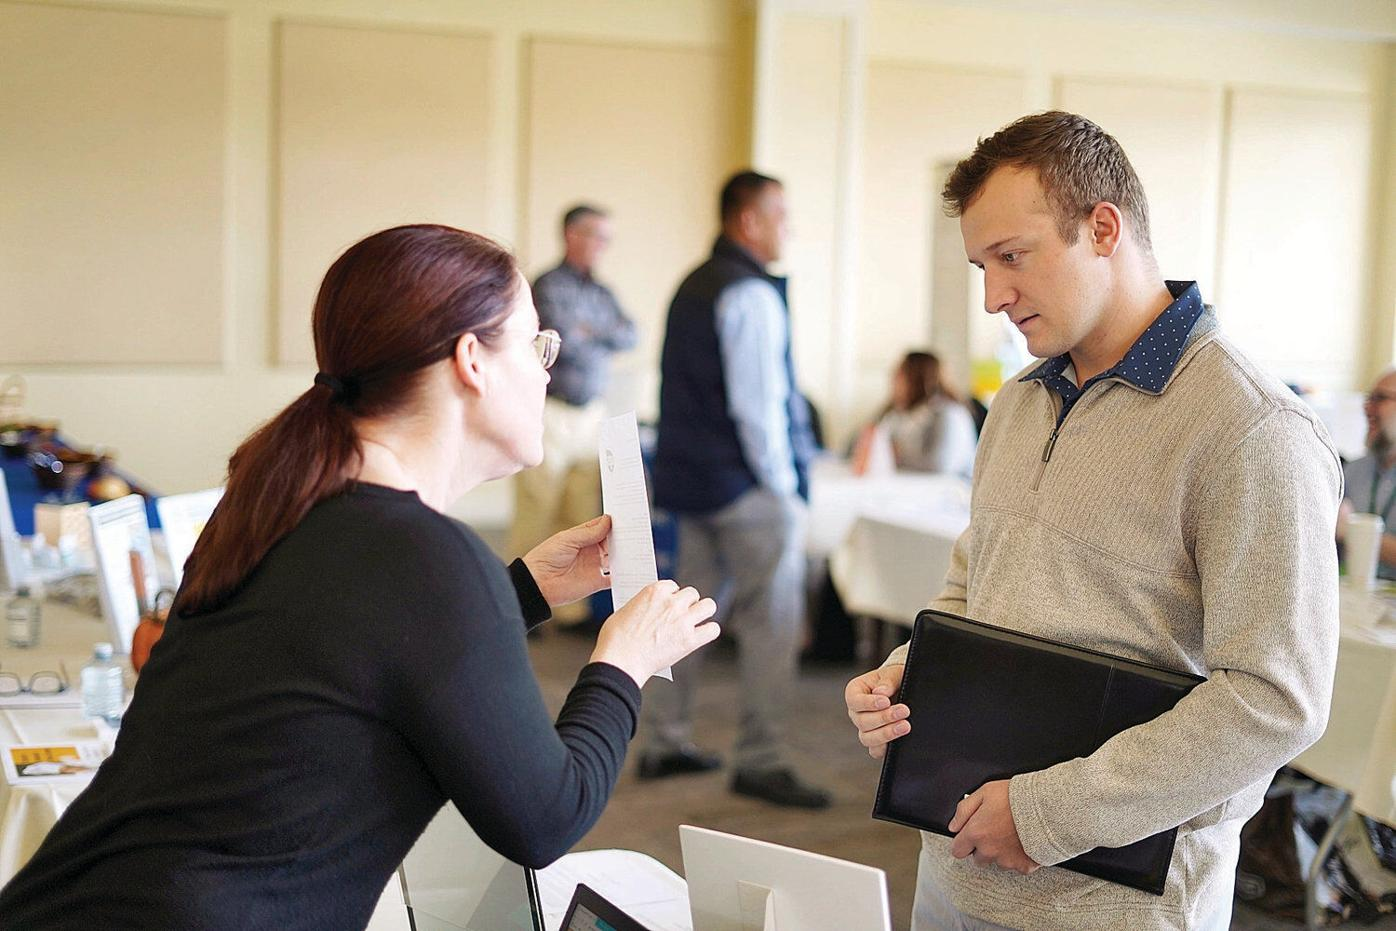 At job fair in Pittsfield, veterans get quality time with prospective employers